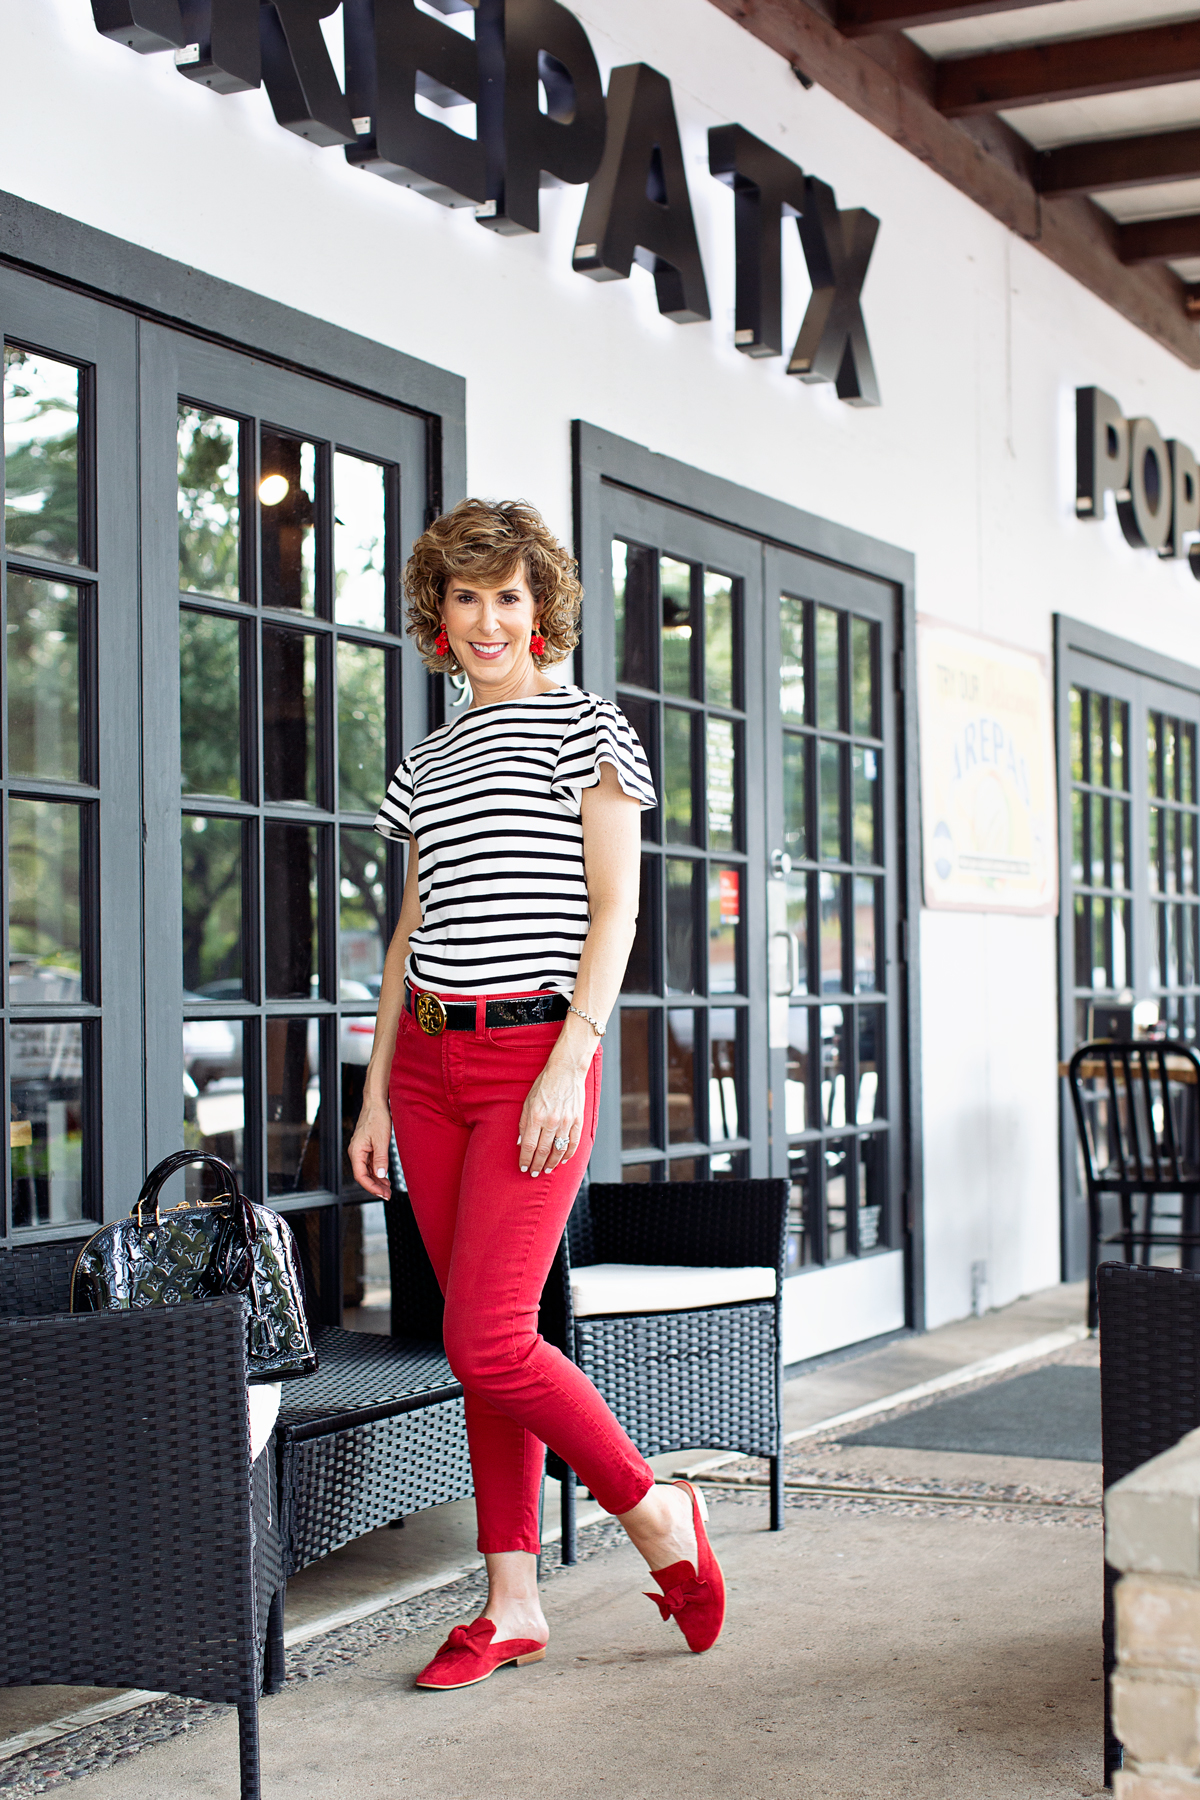 fall fashion trends, fall 2018 fashion trends, 2018 fall fashion, 2018 fall styles, fashion trends fall, fall fashion looks, fall style, fall fashion, fashion over 50, fashion over fifty, fashion over 40, fashion over forty, what's in style for fall, fall fashion over 50, fall fashion for seniors, how to be in style over 50, wardrobe update, over 50 wardrobe update, what to buy fall 2018, wide leg pants, logo belts, nightgown look, field jackets, field jacket, utility jacket, utility jackets, wrap dress, wrap dresses, floral tops for fall, floral dresses for fall, joggers, asymmetric hemline, raw edge